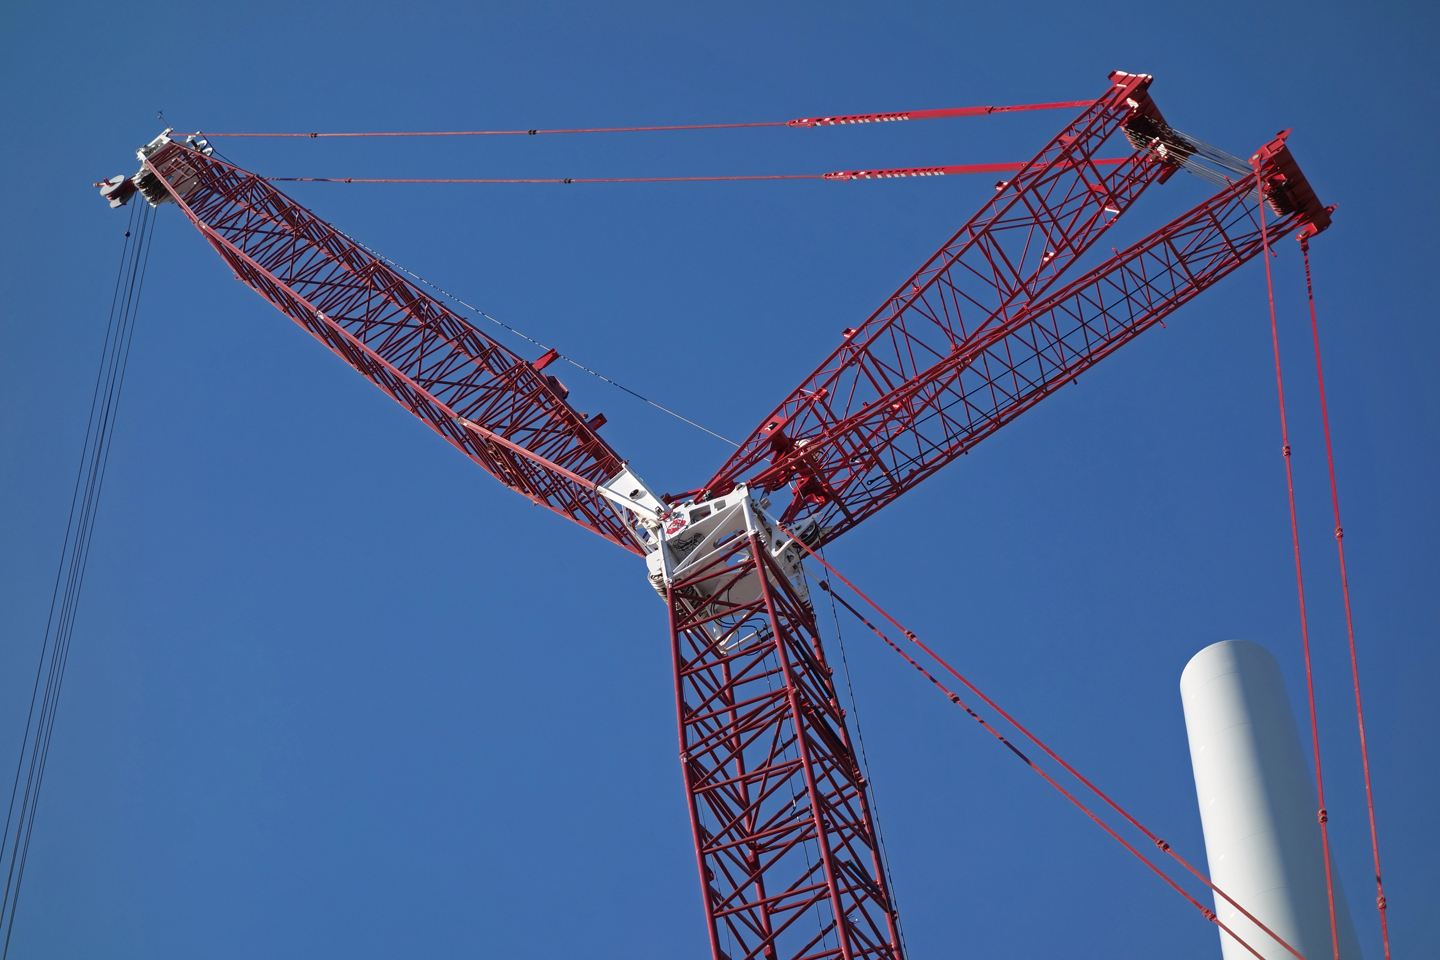 Varian wind turbine installation 11-1-12 (2a) | GoodMorningGloucester